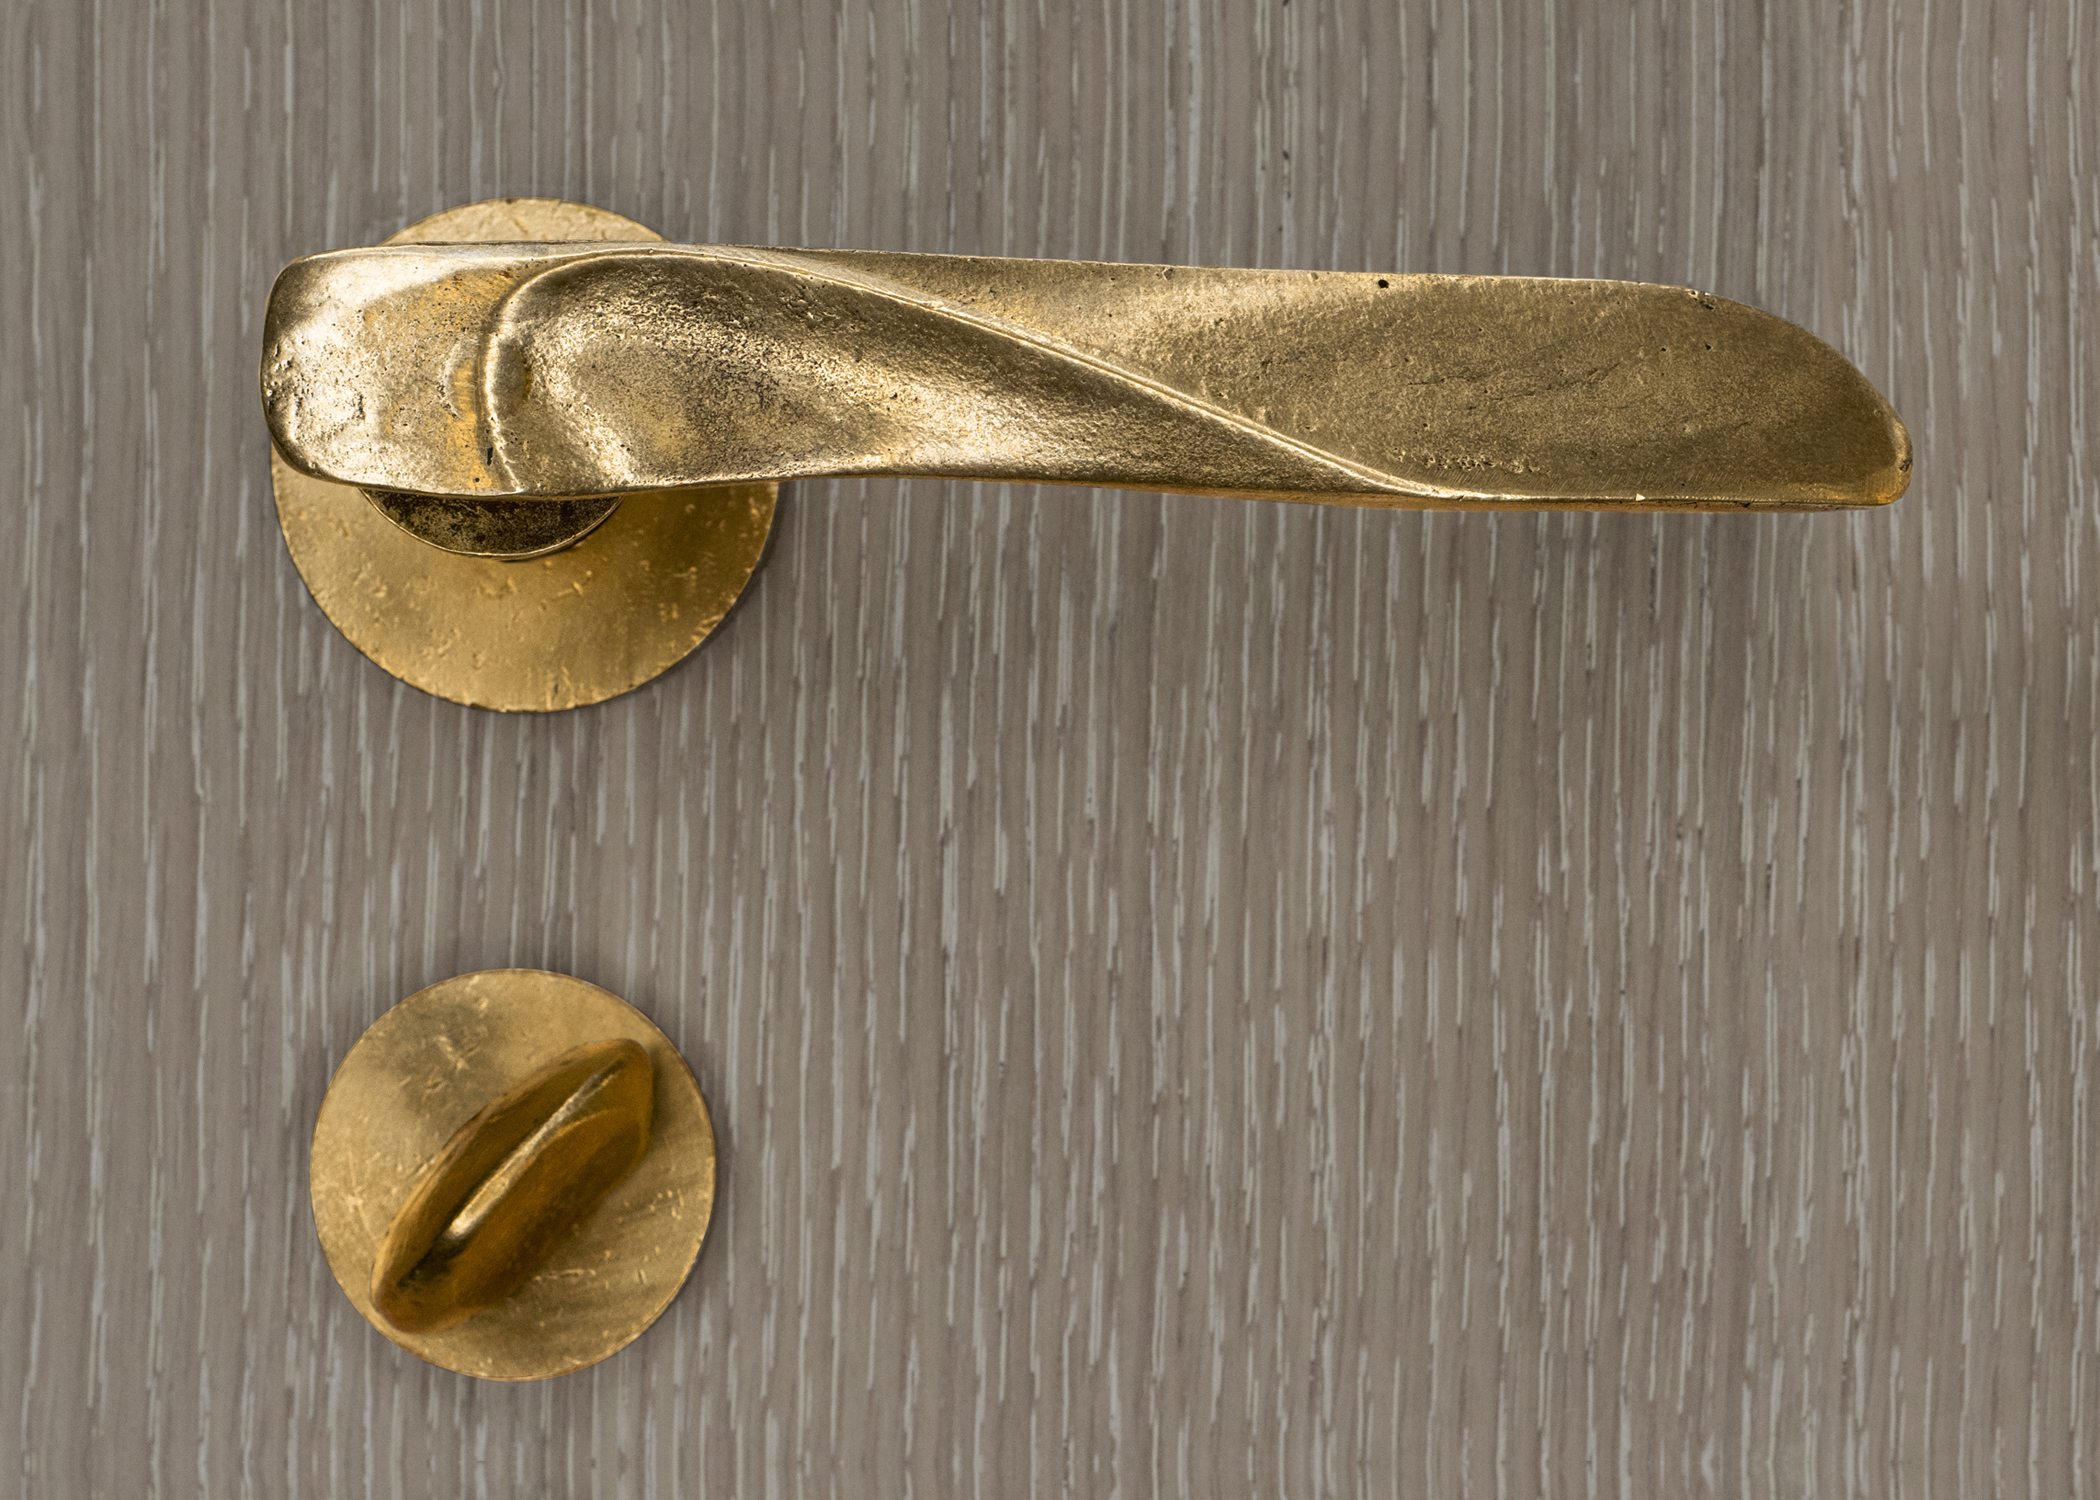 The Versa lever  in natural brass, designed by Mig Perkins